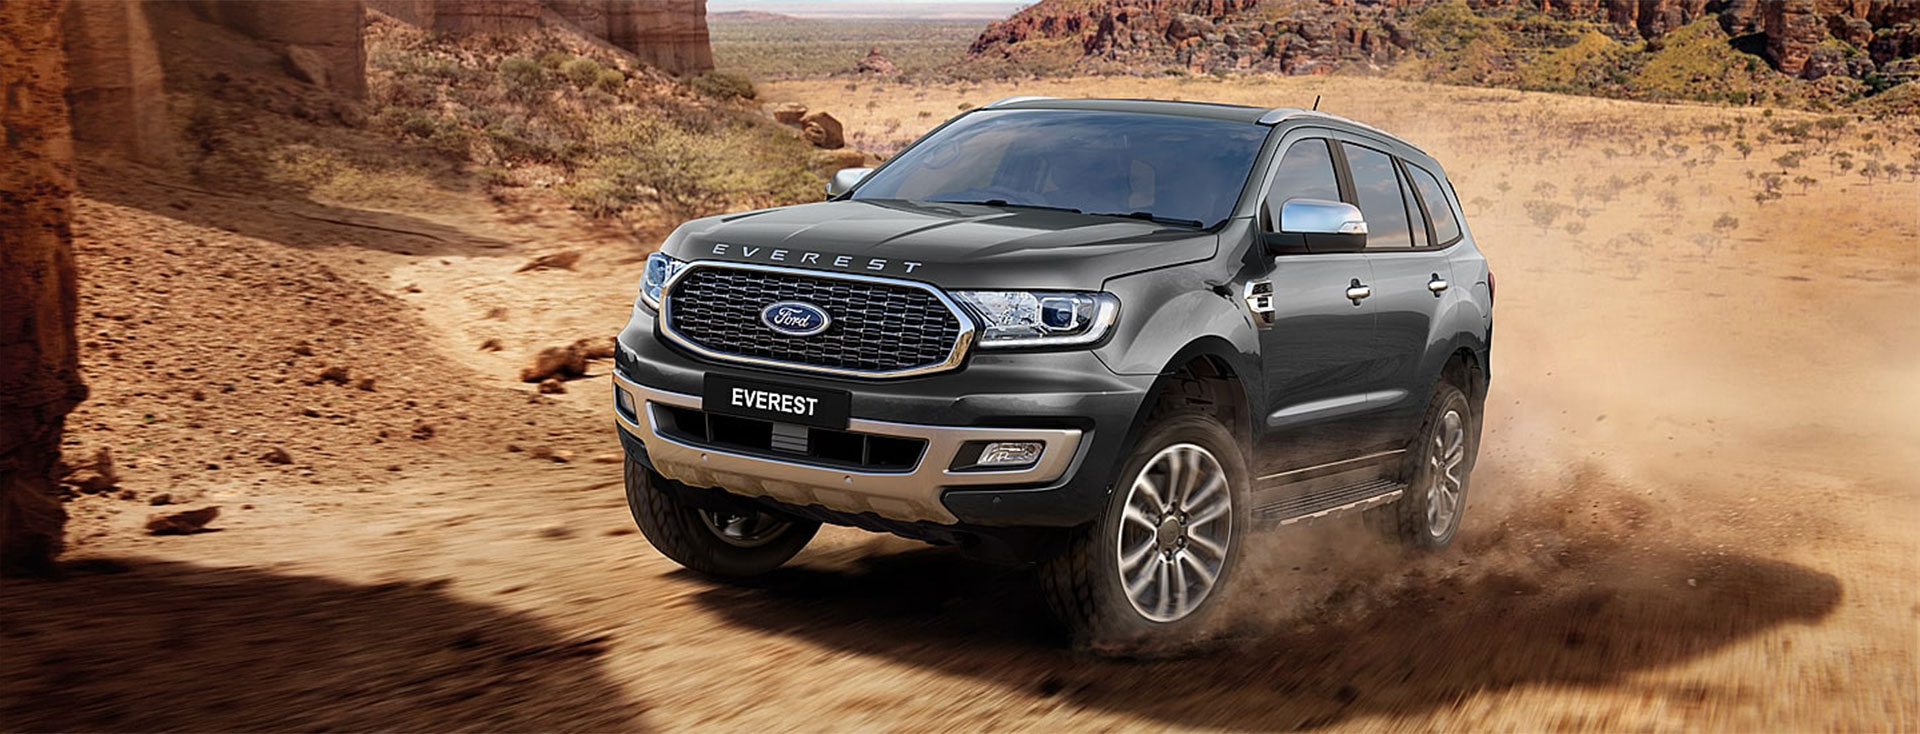 Ford Everest Capability